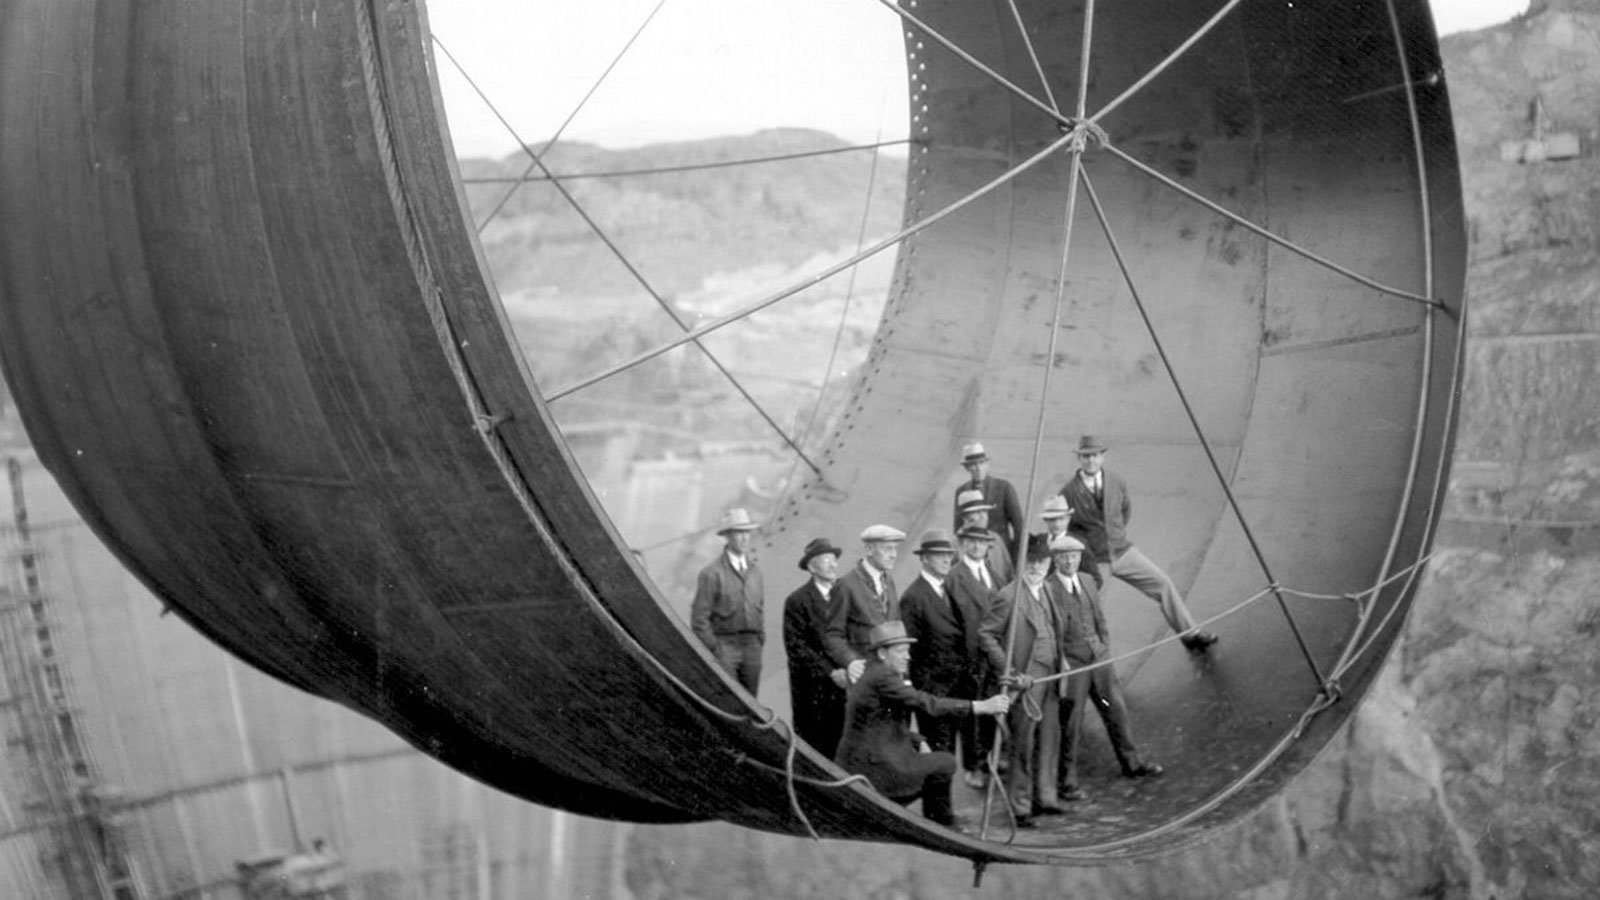 Officials ride in one of the penstock pipes of the soon-to-be-completed Hoover Dam